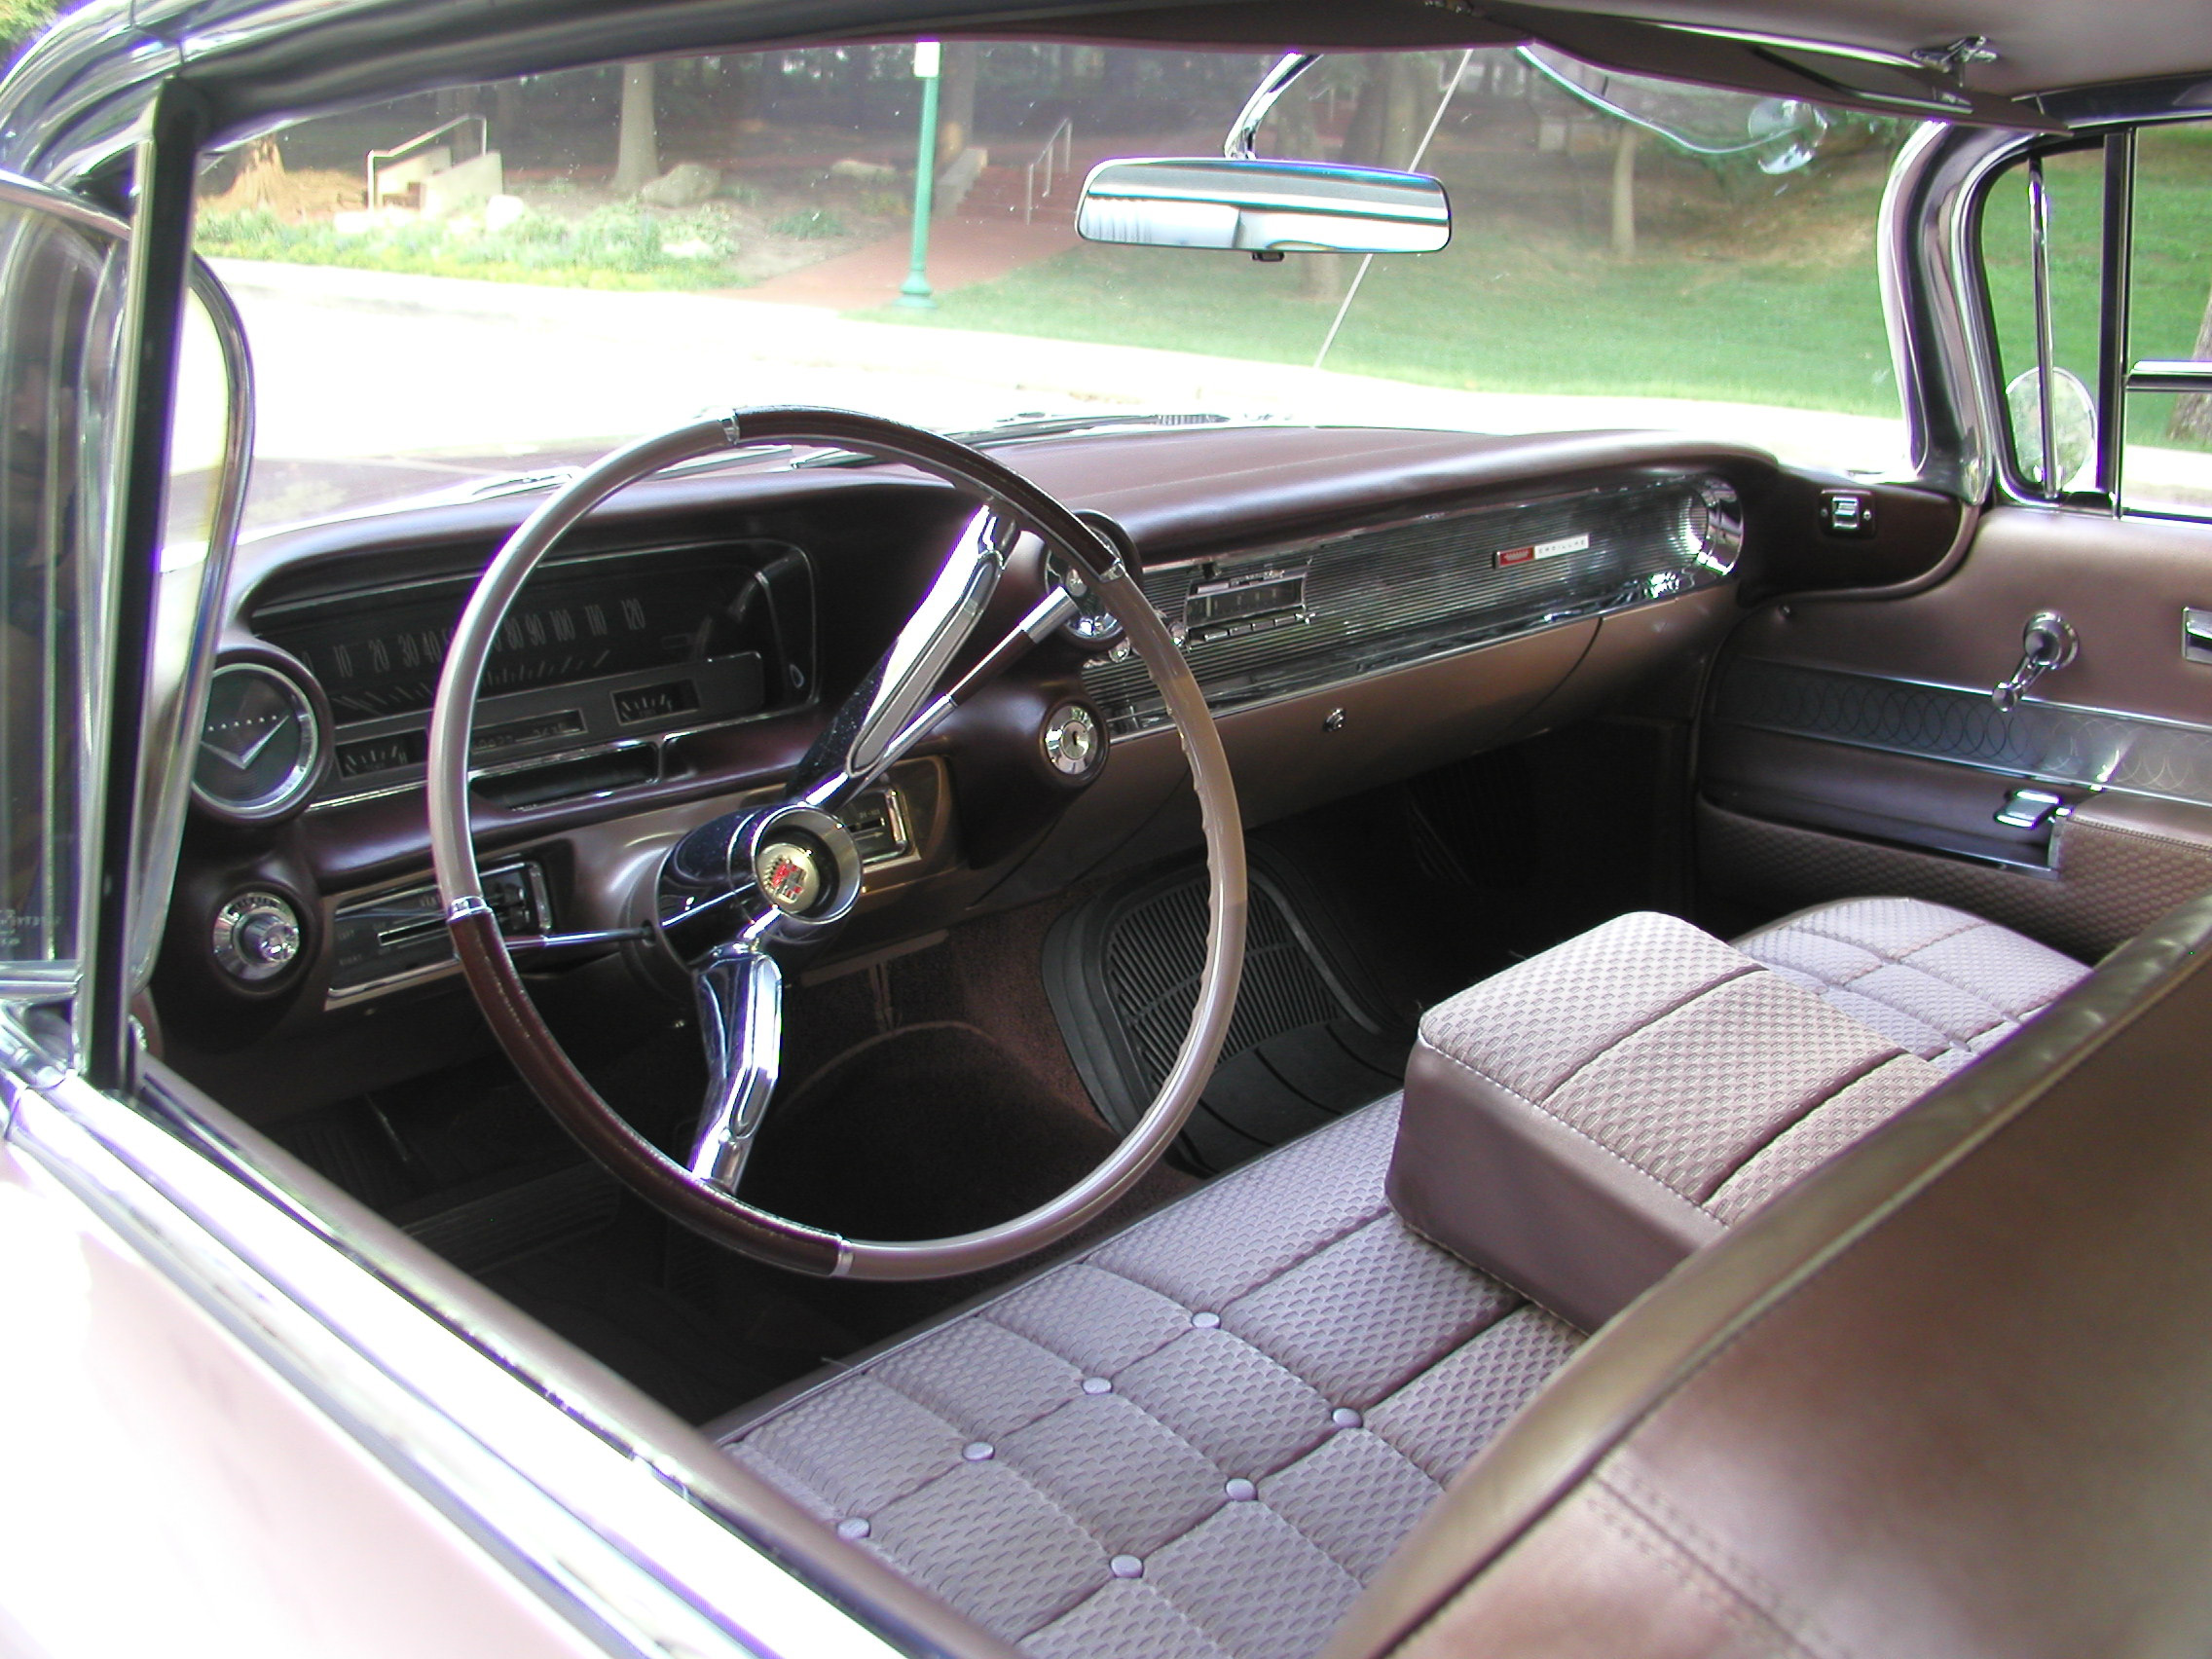 File 1976 cadillac sedan deville interior jpg wikimedia commons - File 1976 Cadillac Sedan Deville Interior Jpg Wikimedia Commons 7